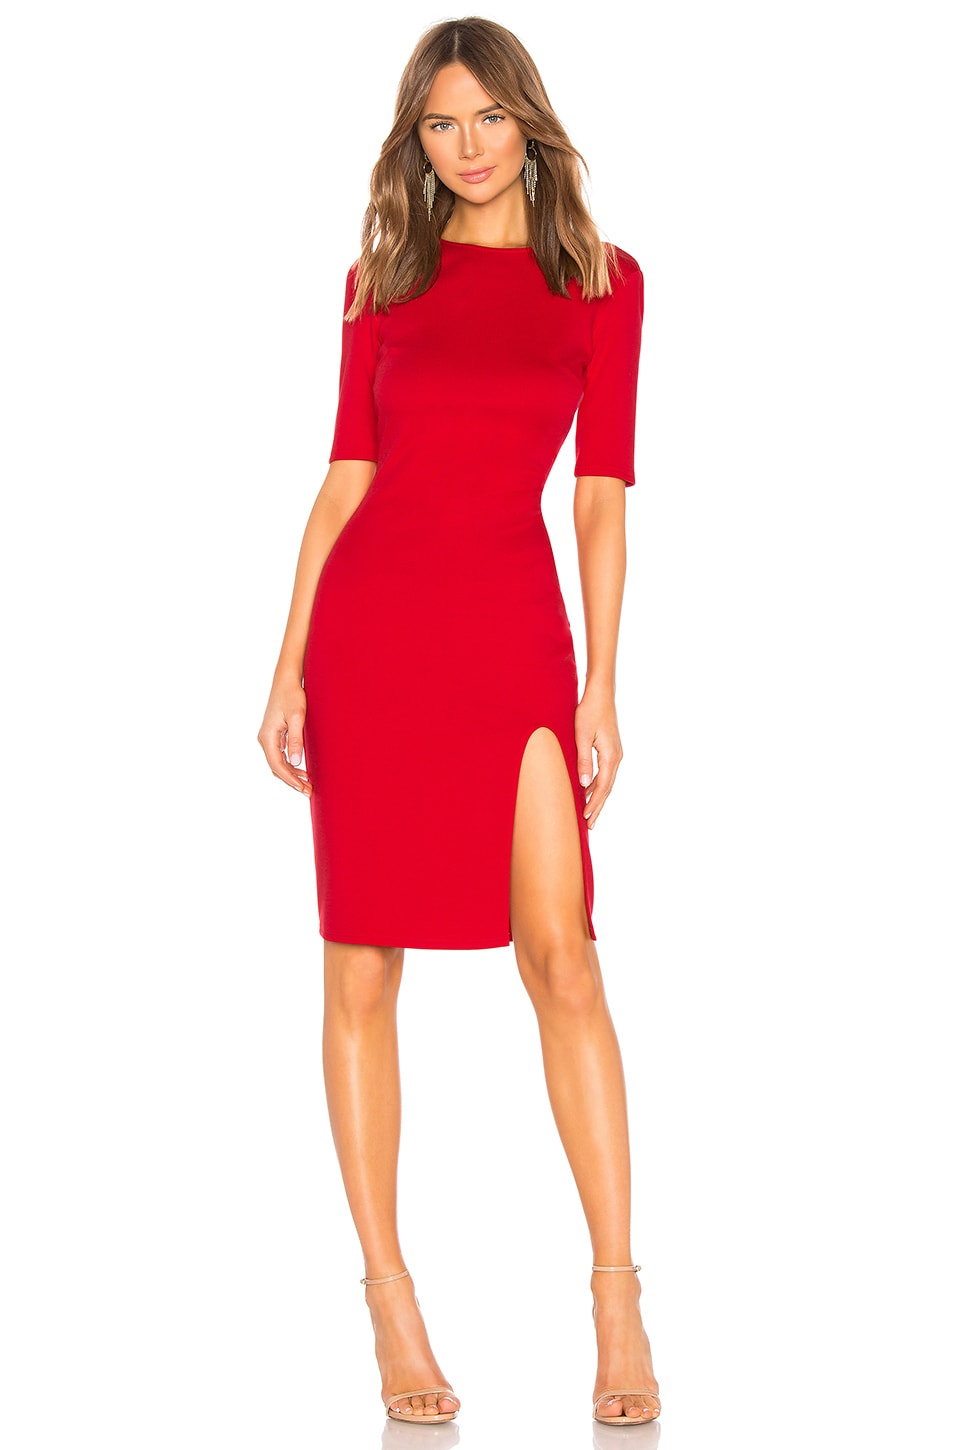 Bailey 44 Vive La Difference Ponte Dress in Bright Red